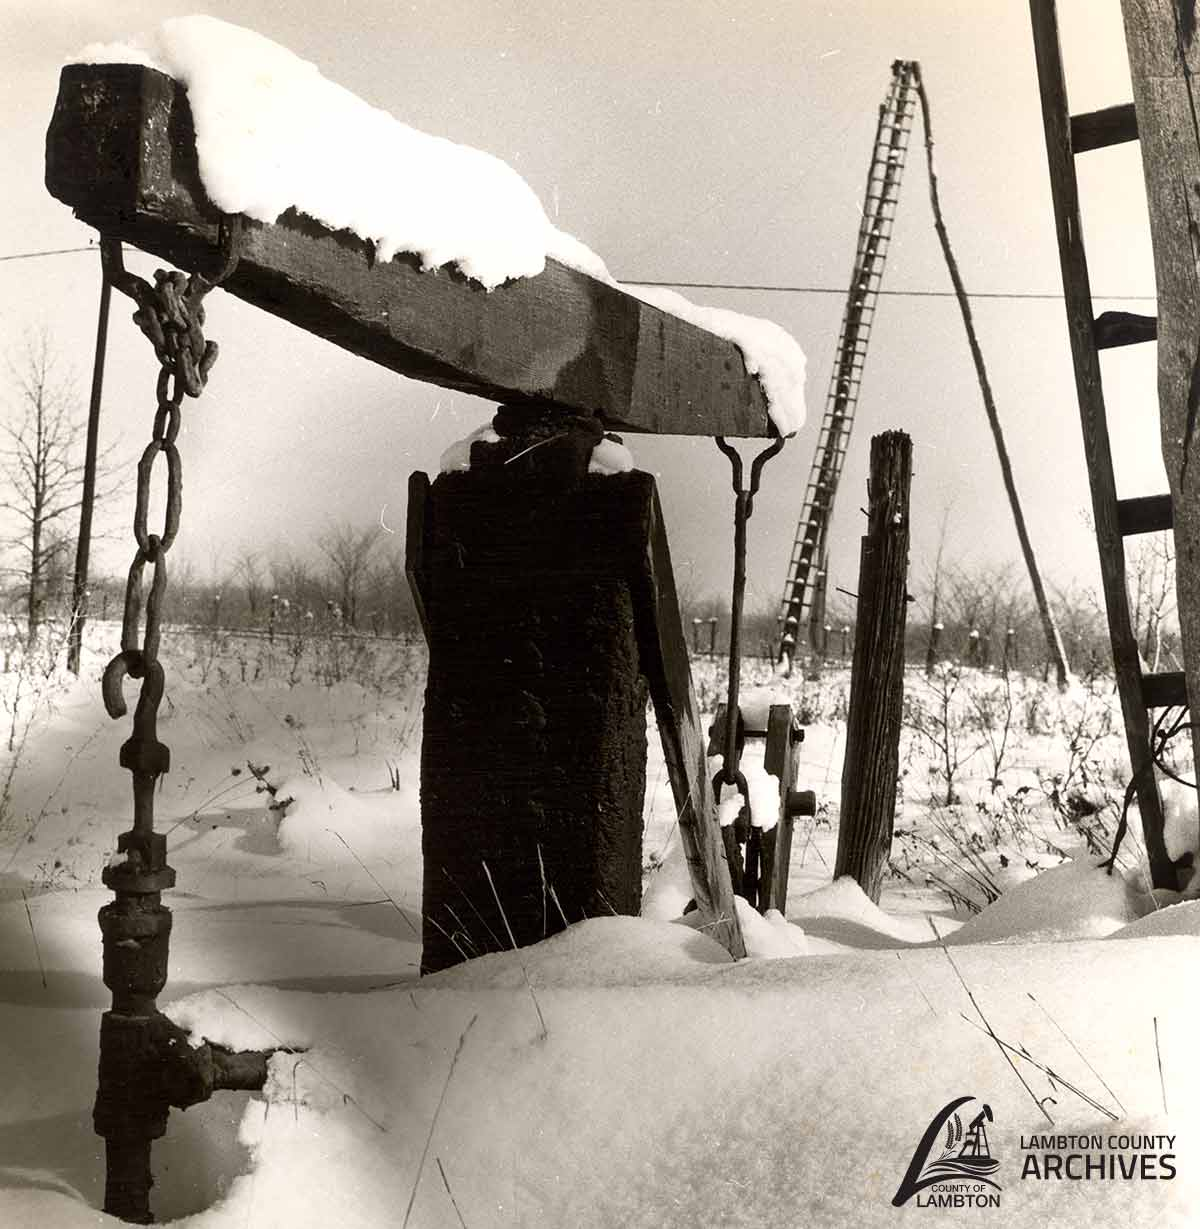 Black and white image of a jack pump in the snow.